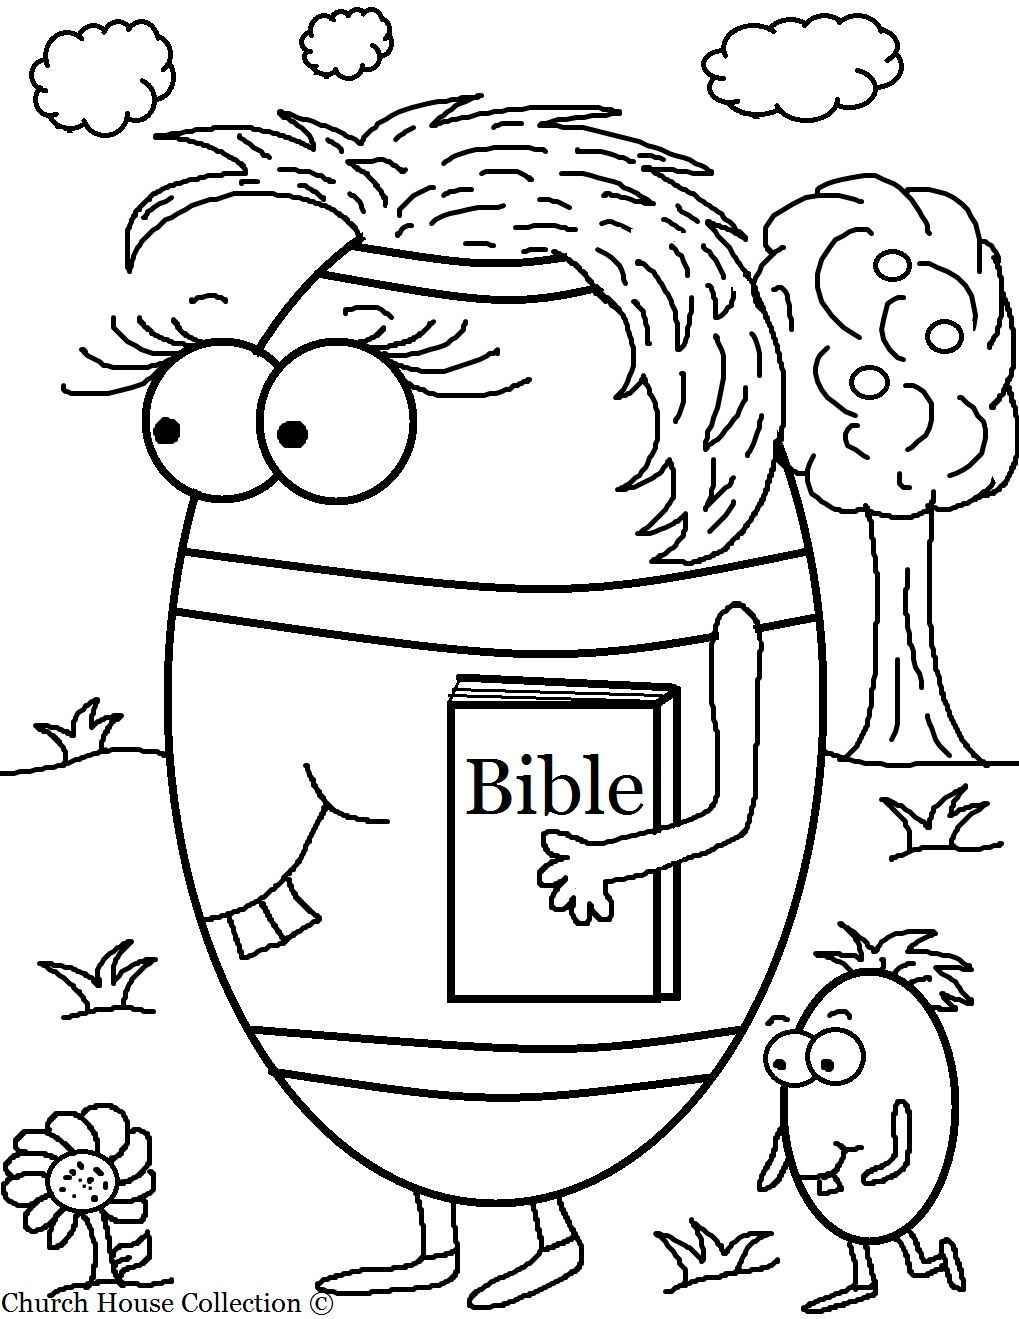 Church House Collection Blog Free Easter Egg Carrying Her Bible Coloring Page For Sunday School